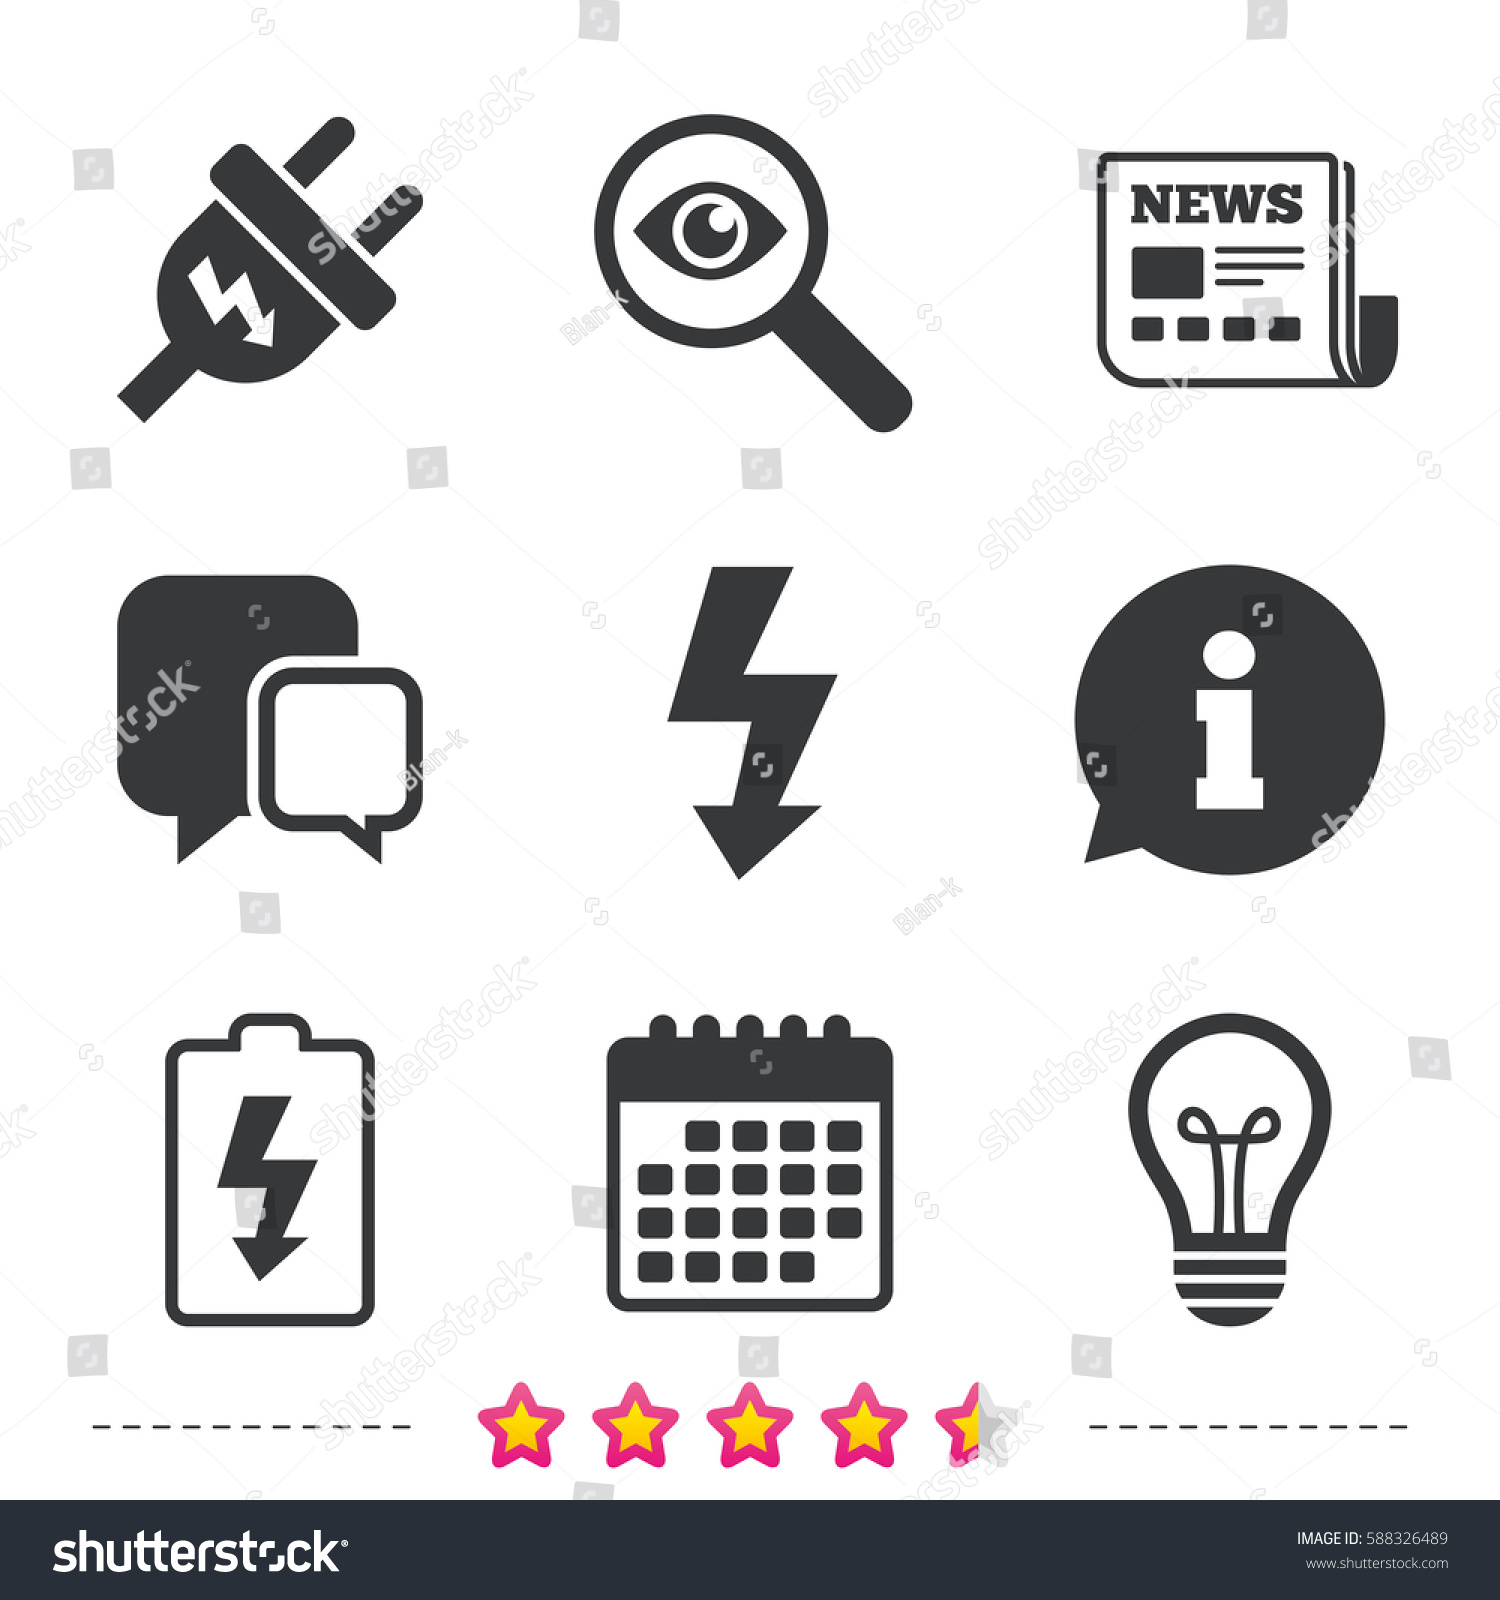 Electric Plug Icon Lamp Bulb Battery Stock Vector (2018) 588326489 ...